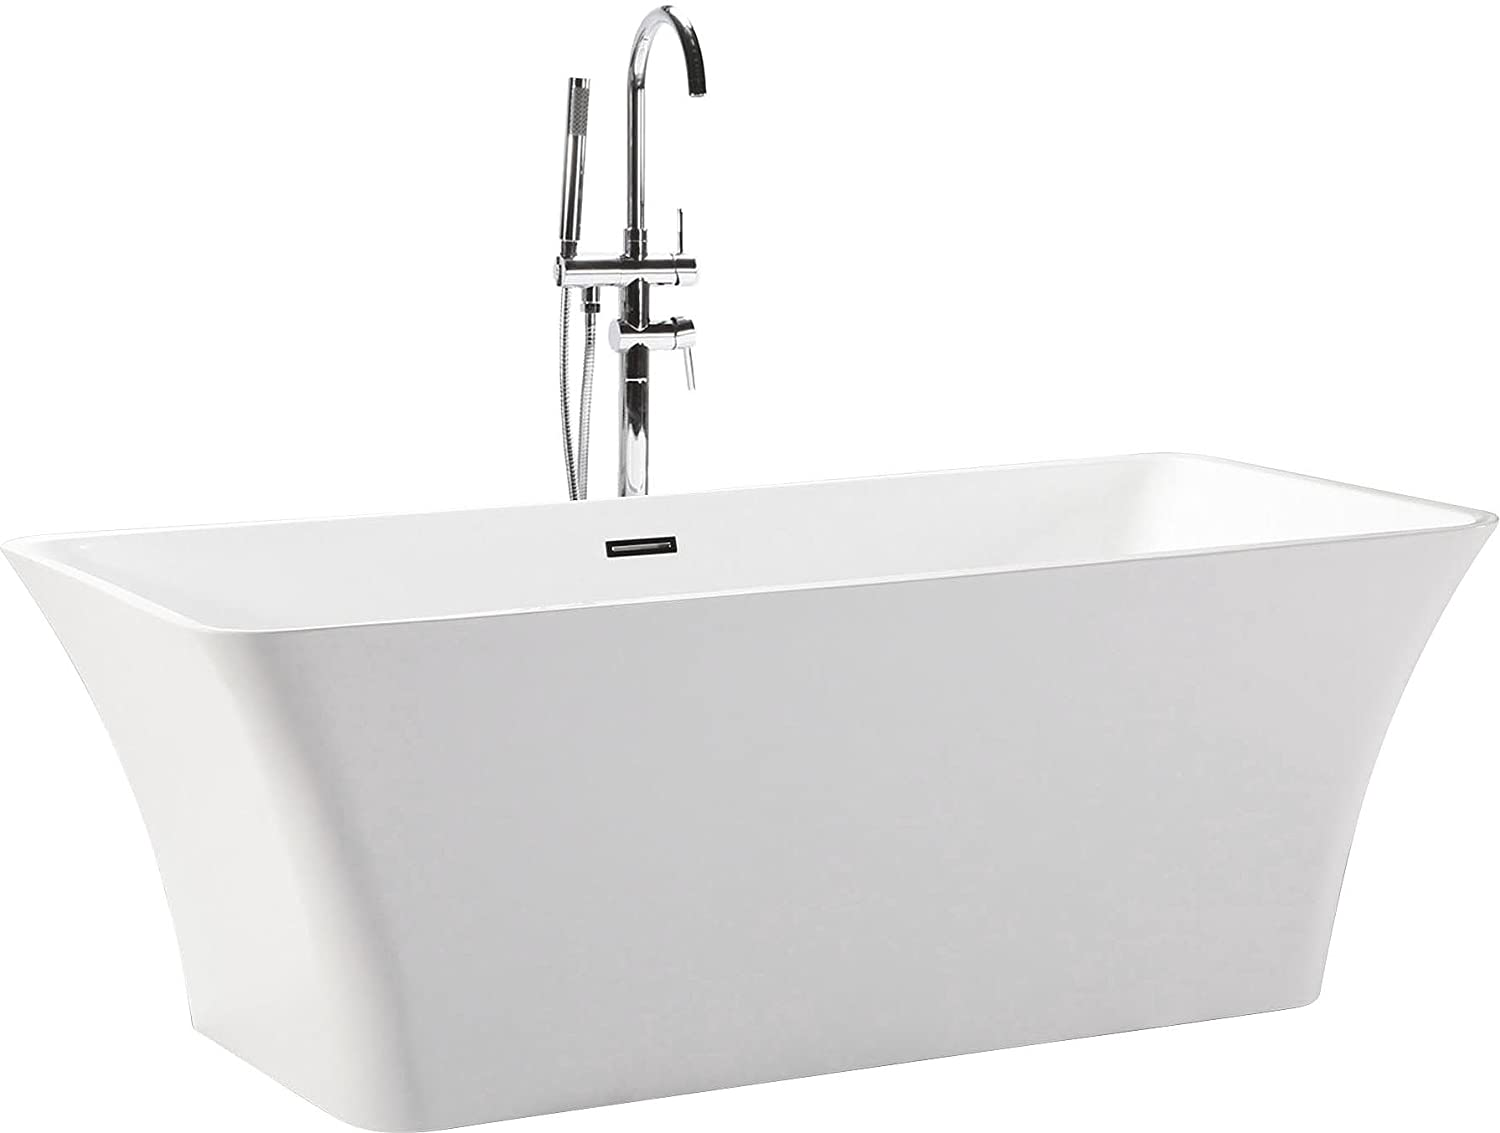 Kardiel HB-BT-PARVA-59-RO HelixBath Parva Freestanding Acrylic Bathtub, 59 , Whiterectangle Overflow